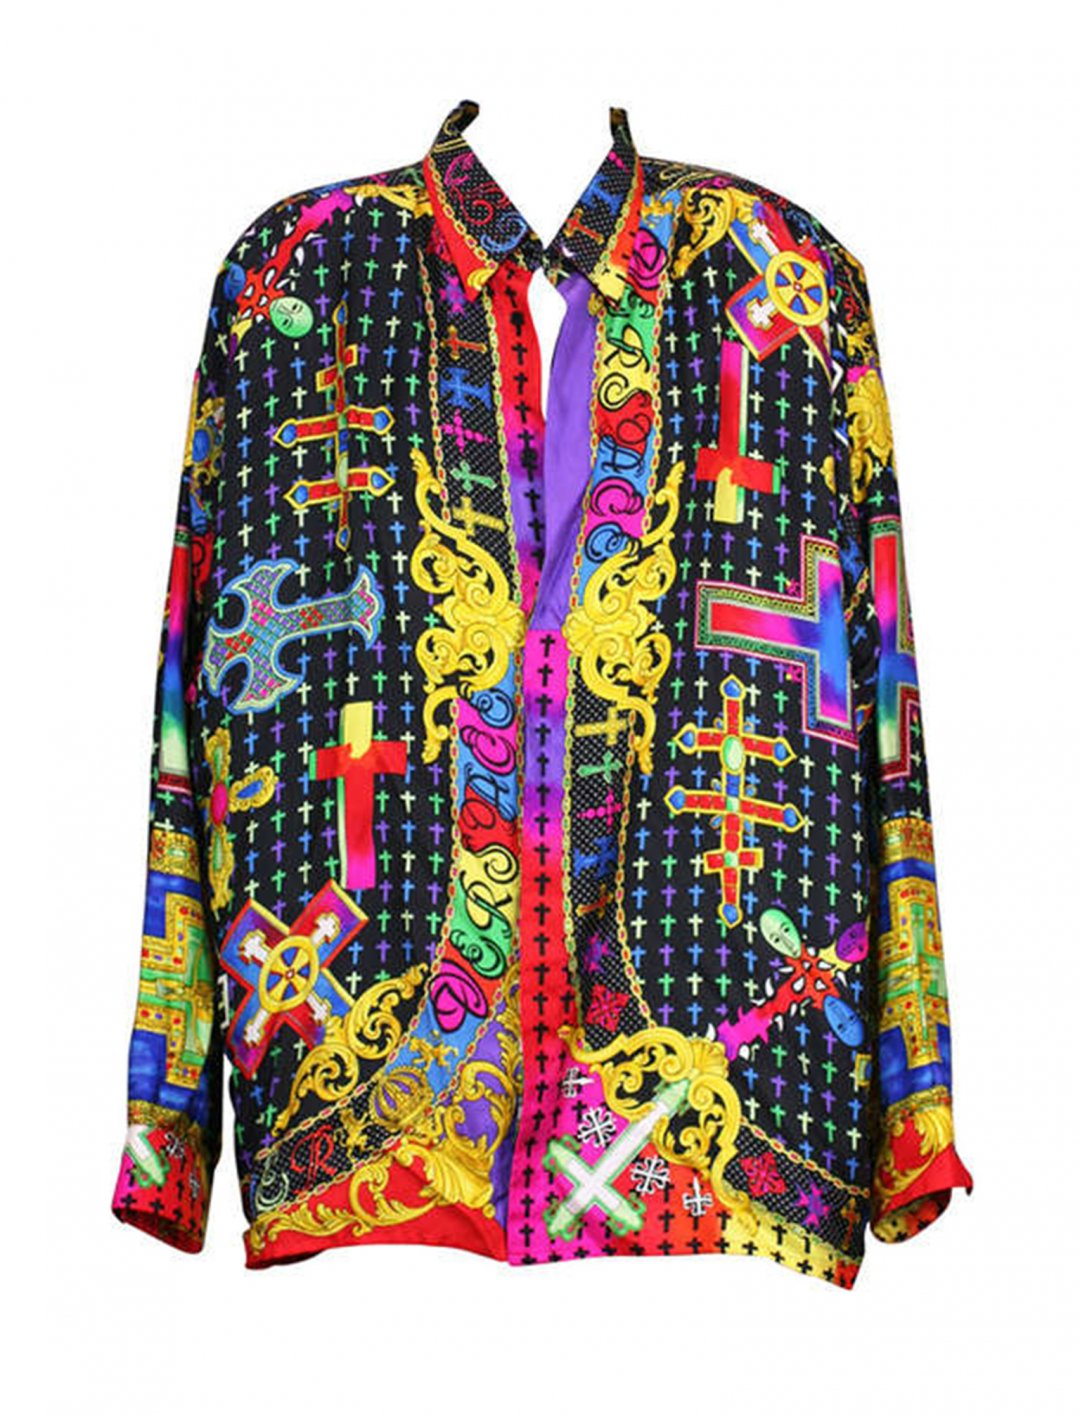 """Kodie Shane's Silk Printed Shirt {""""id"""":5,""""product_section_id"""":1,""""name"""":""""Clothing"""",""""order"""":5} Gianni Versace"""